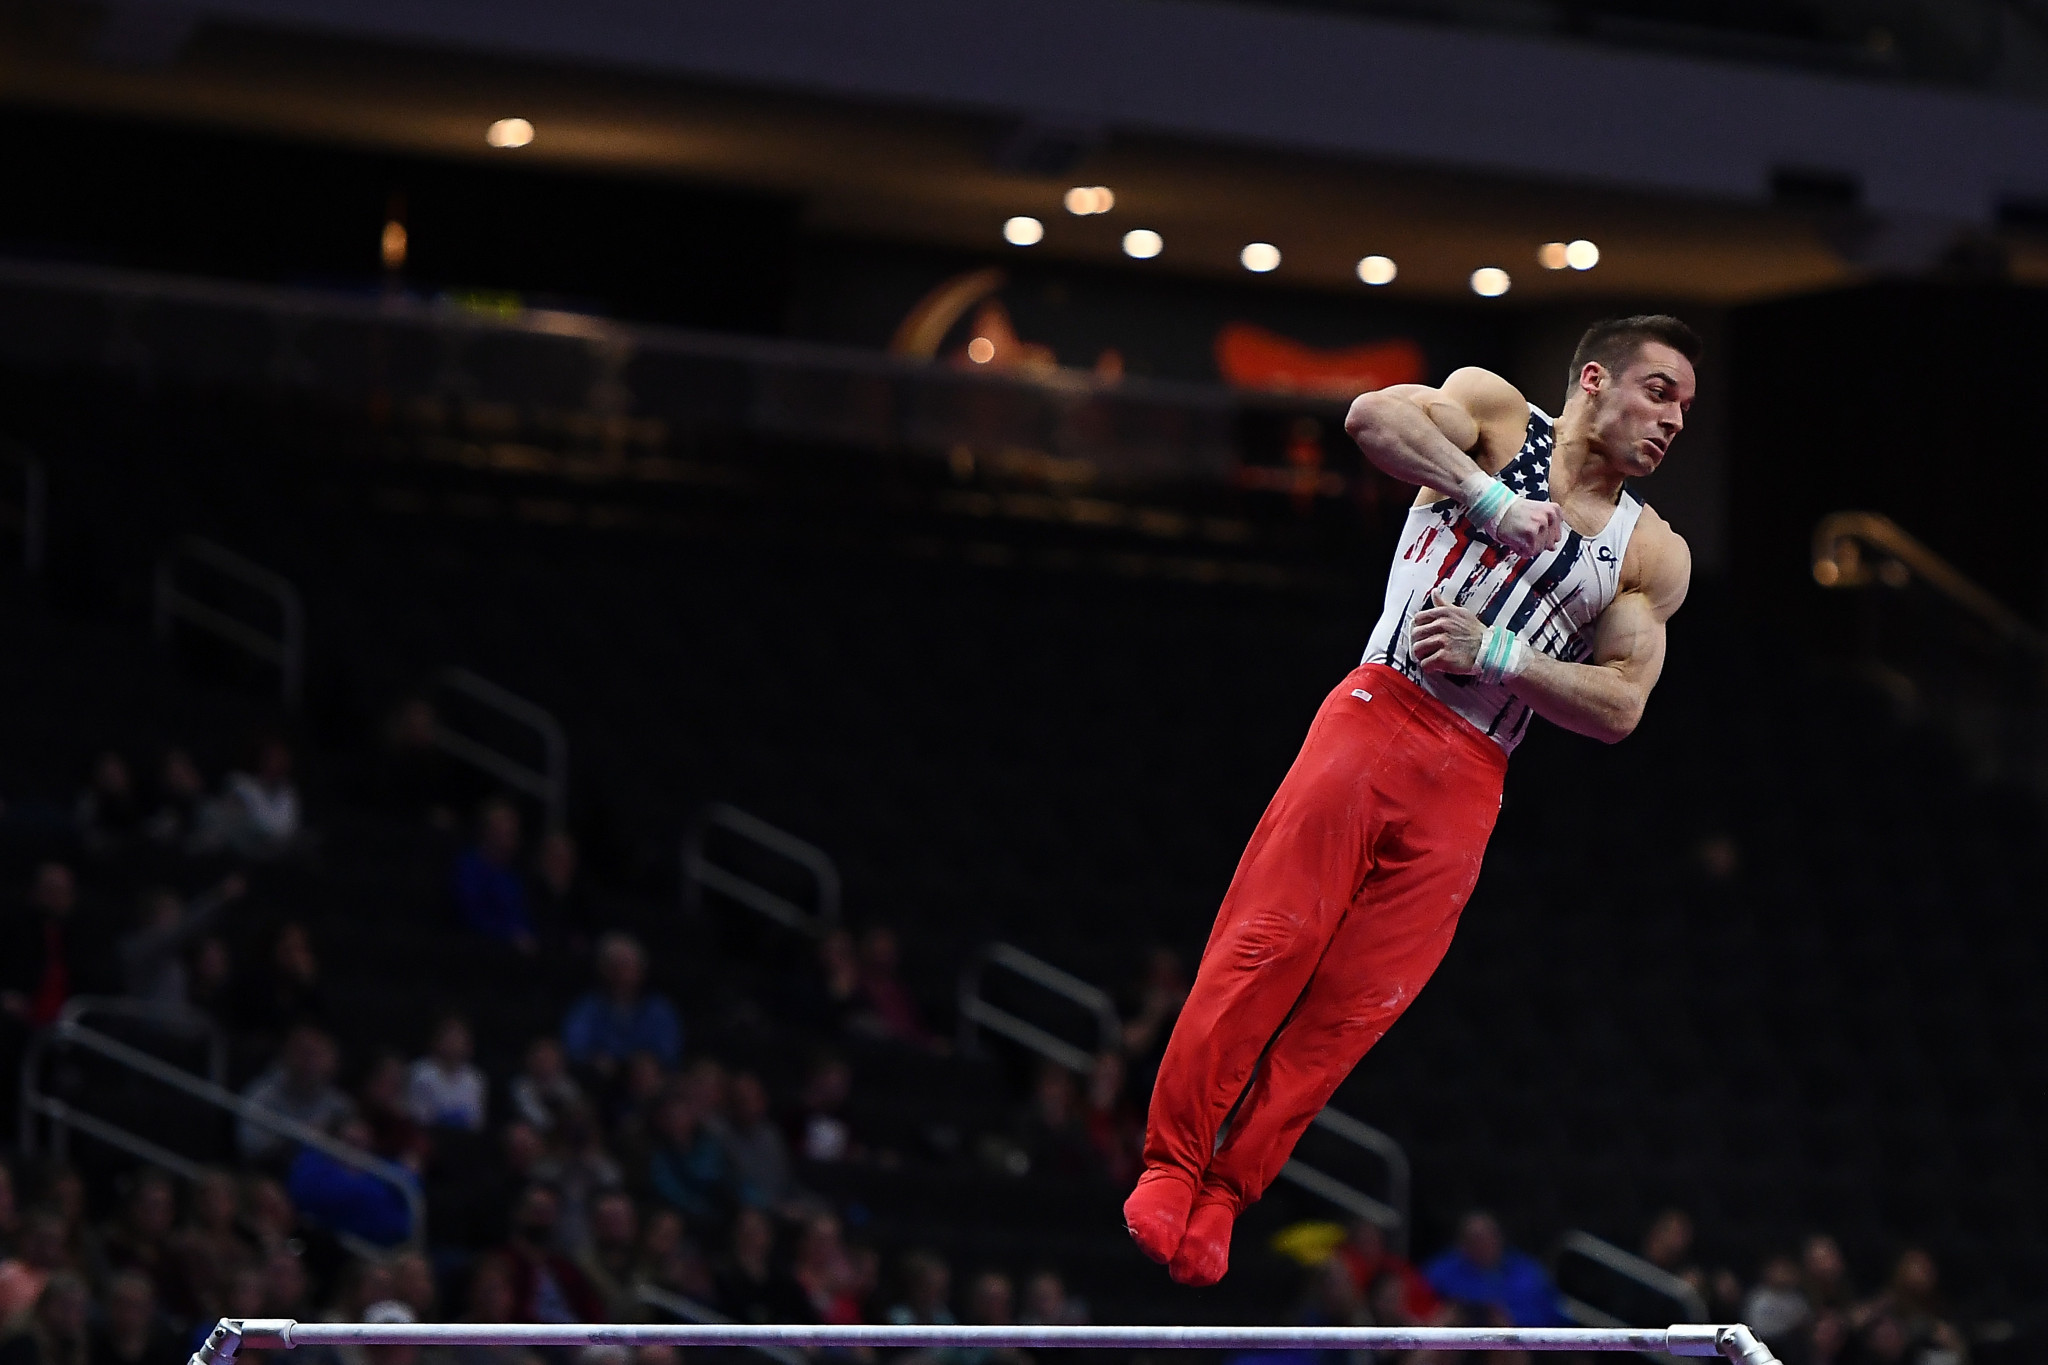 American gymnast Mikulak to retire after Tokyo 2020